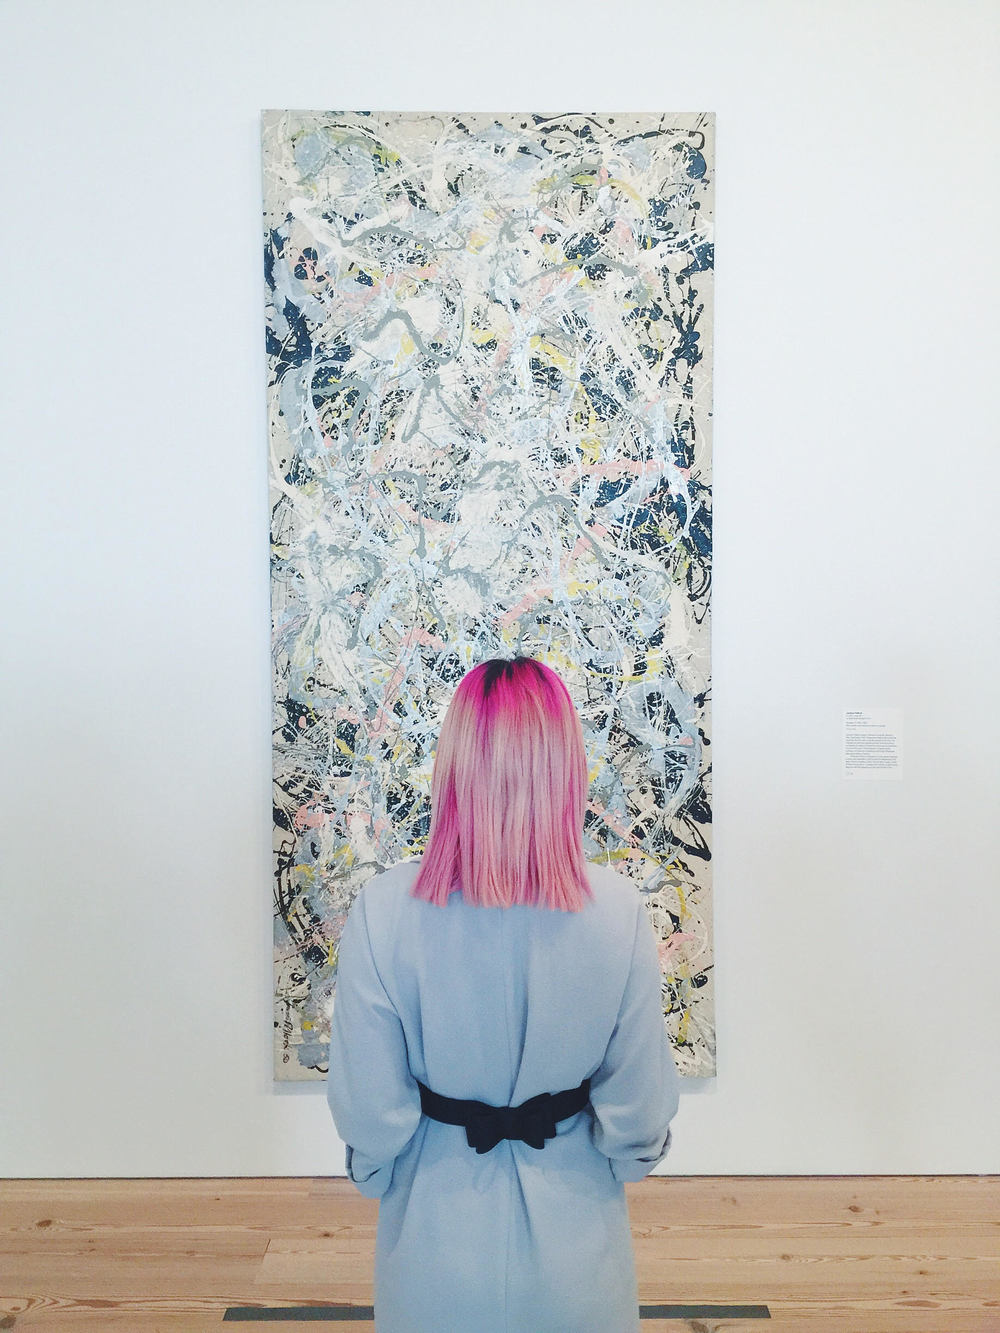 Whitney Museum, Pollock. l October, 2015